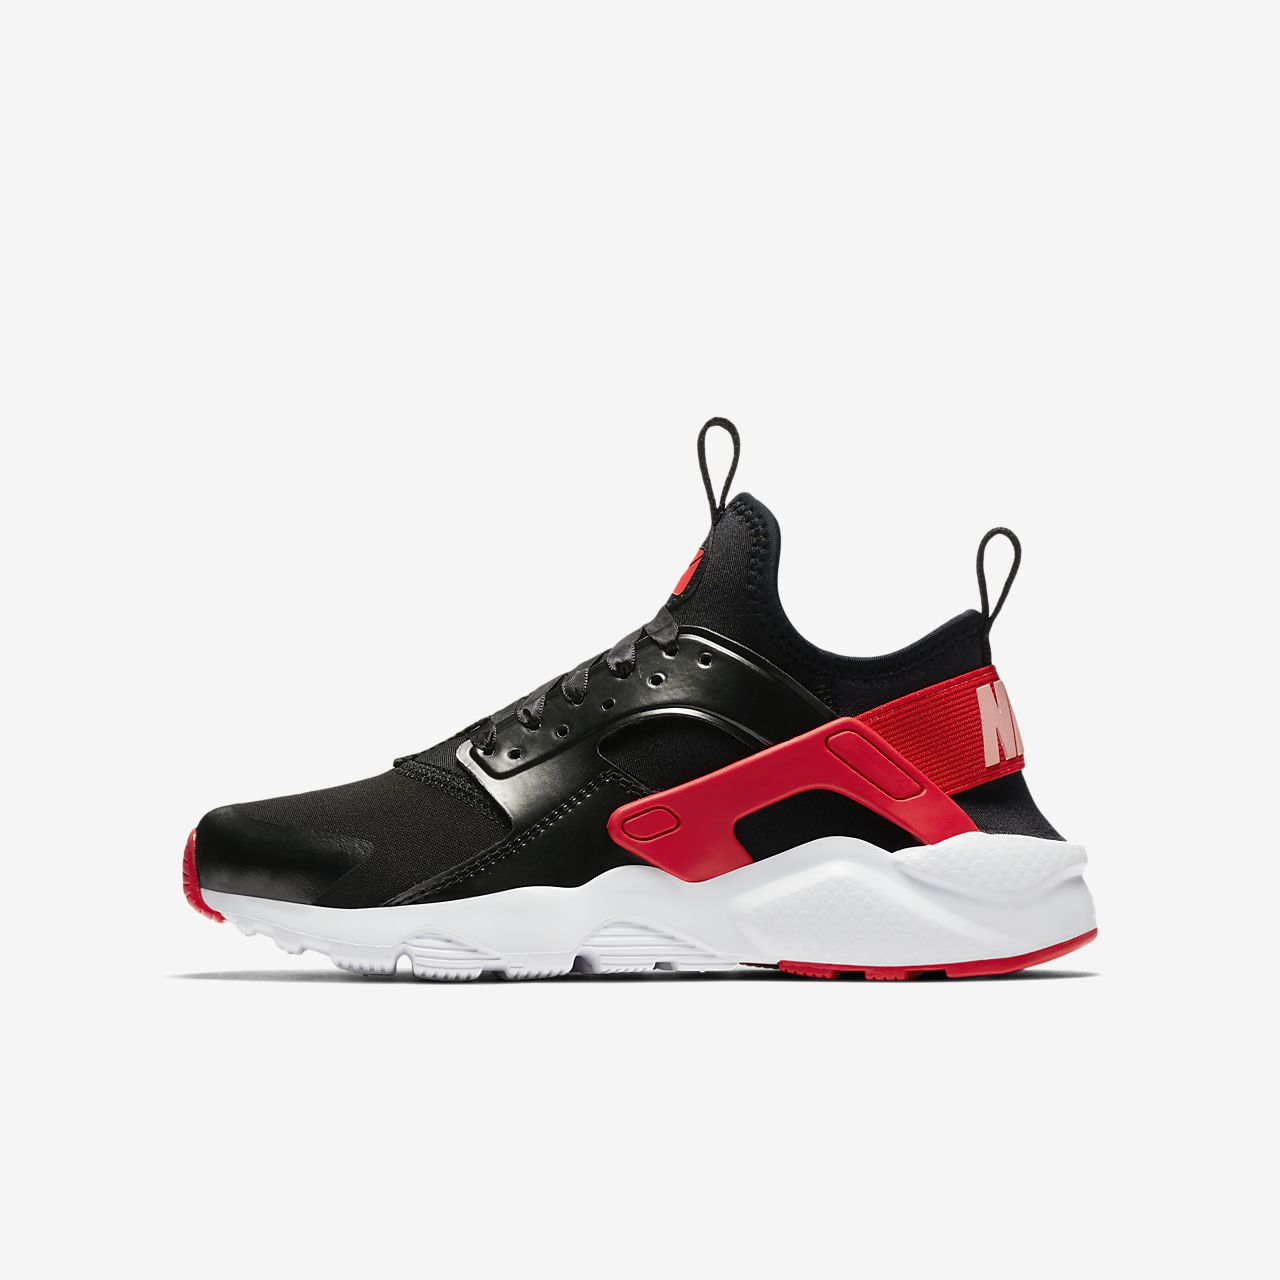 Nike Chaussures Air Huarache Run Ultra Noir Nike VjyN40uz